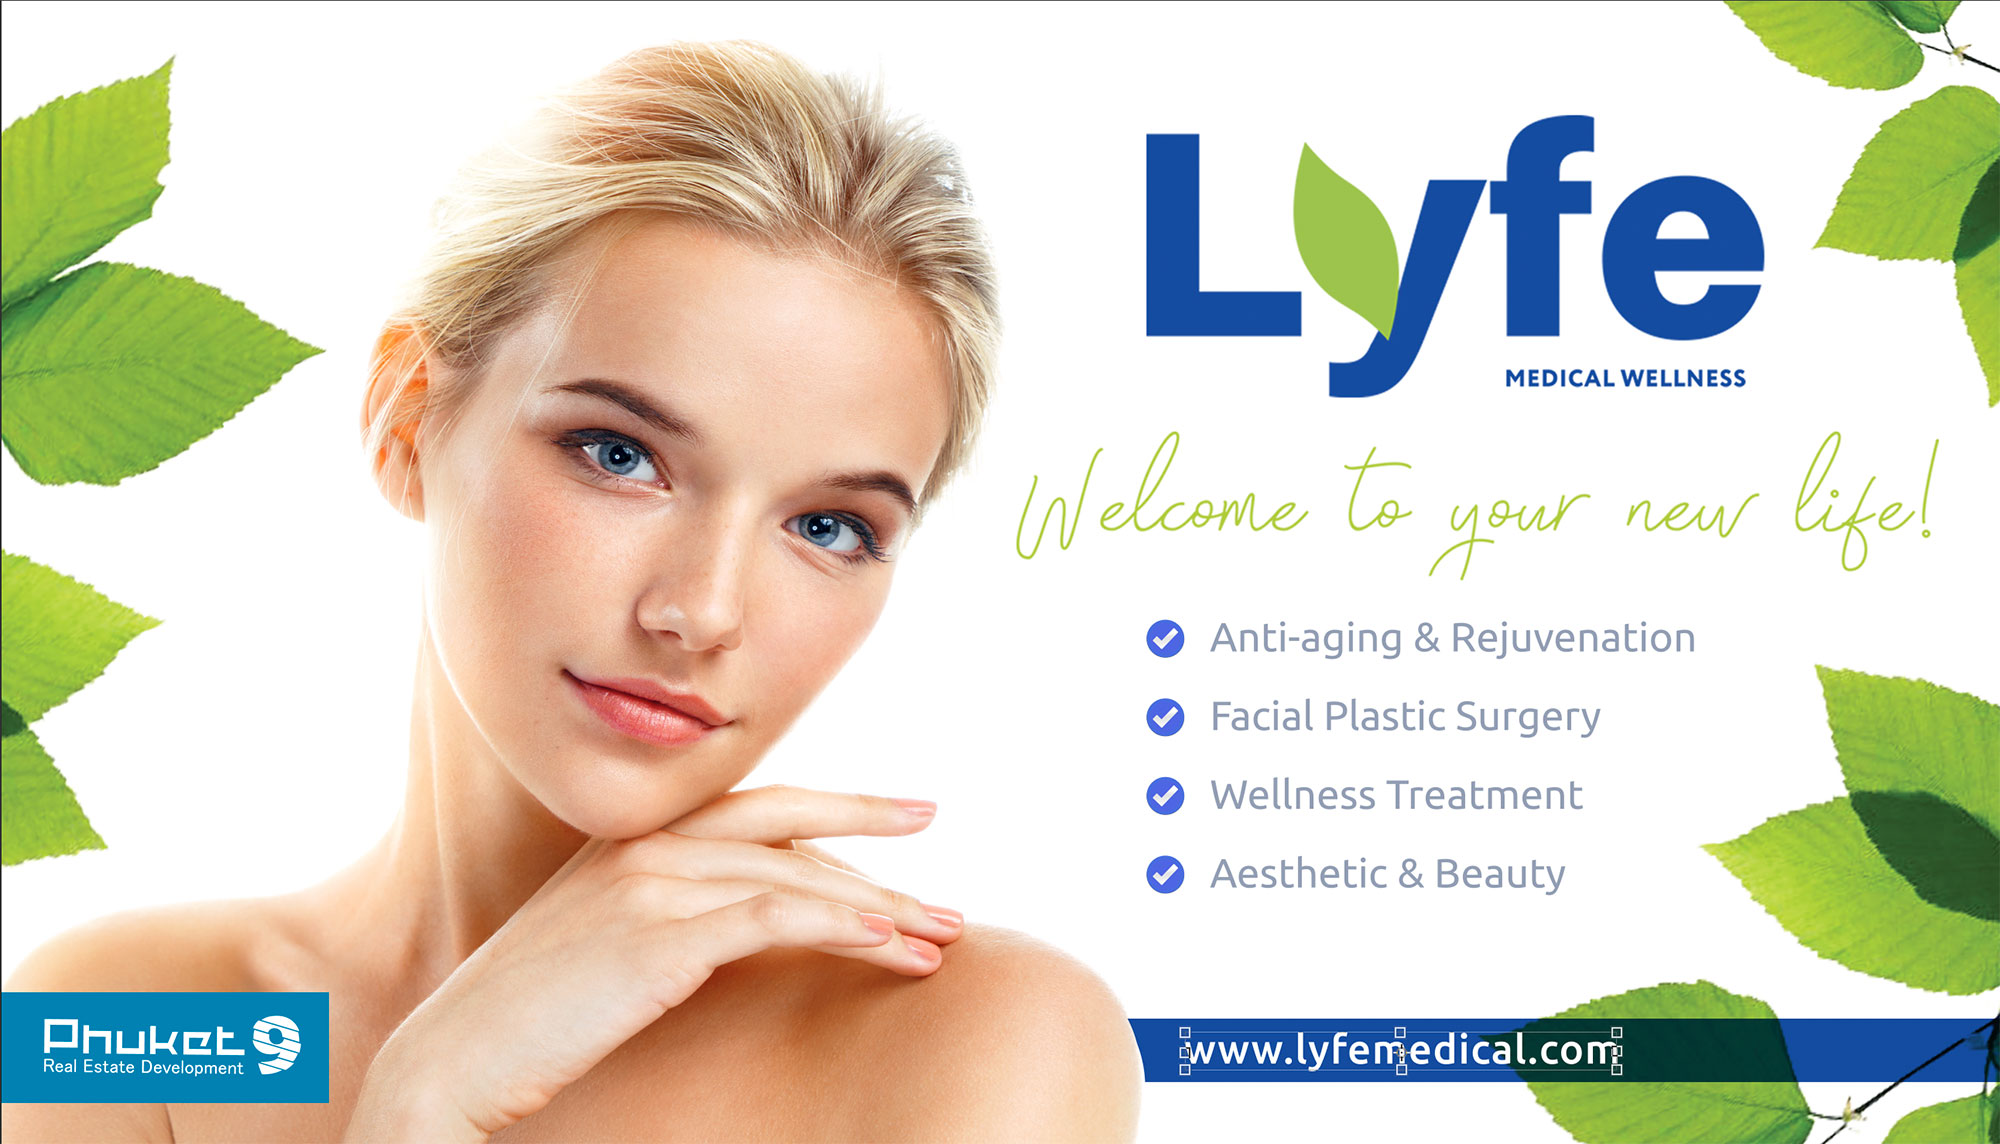 LyfeMedical-web